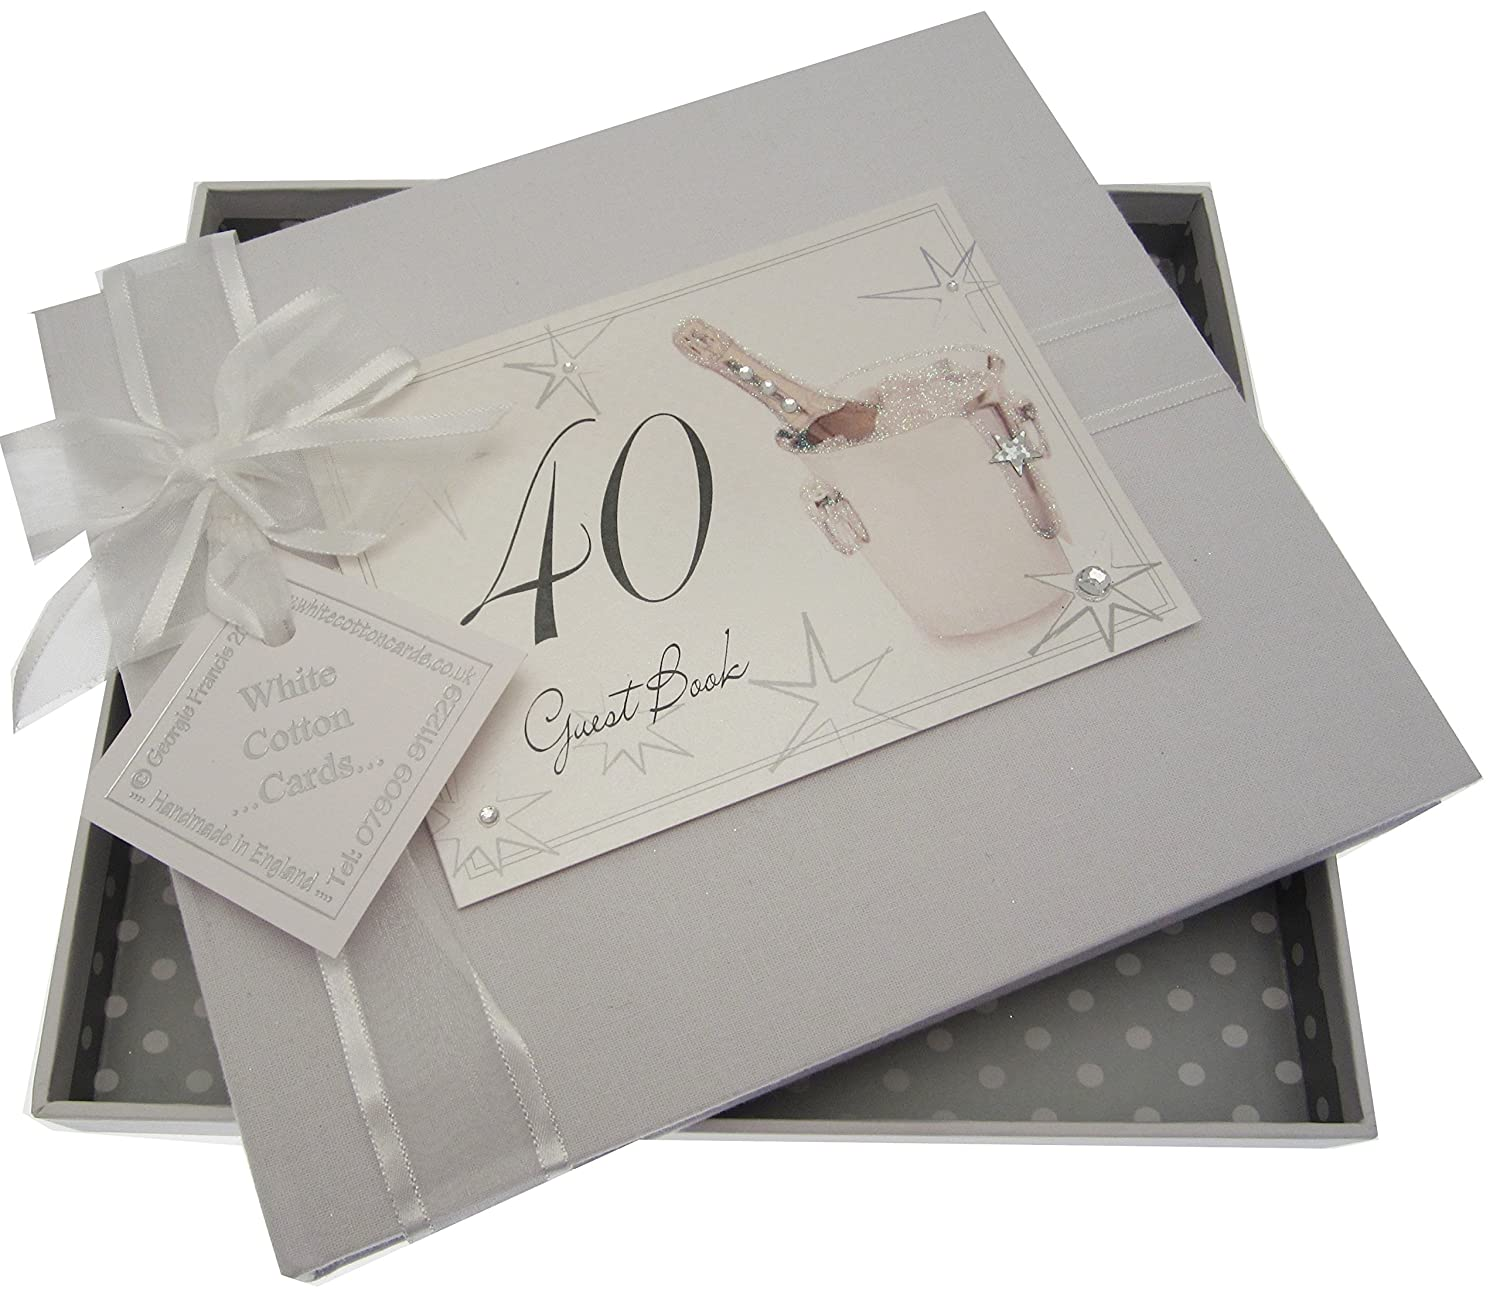 40th Birthday, Guest Book, Champagne Bucket White Cotton Cards AC40G